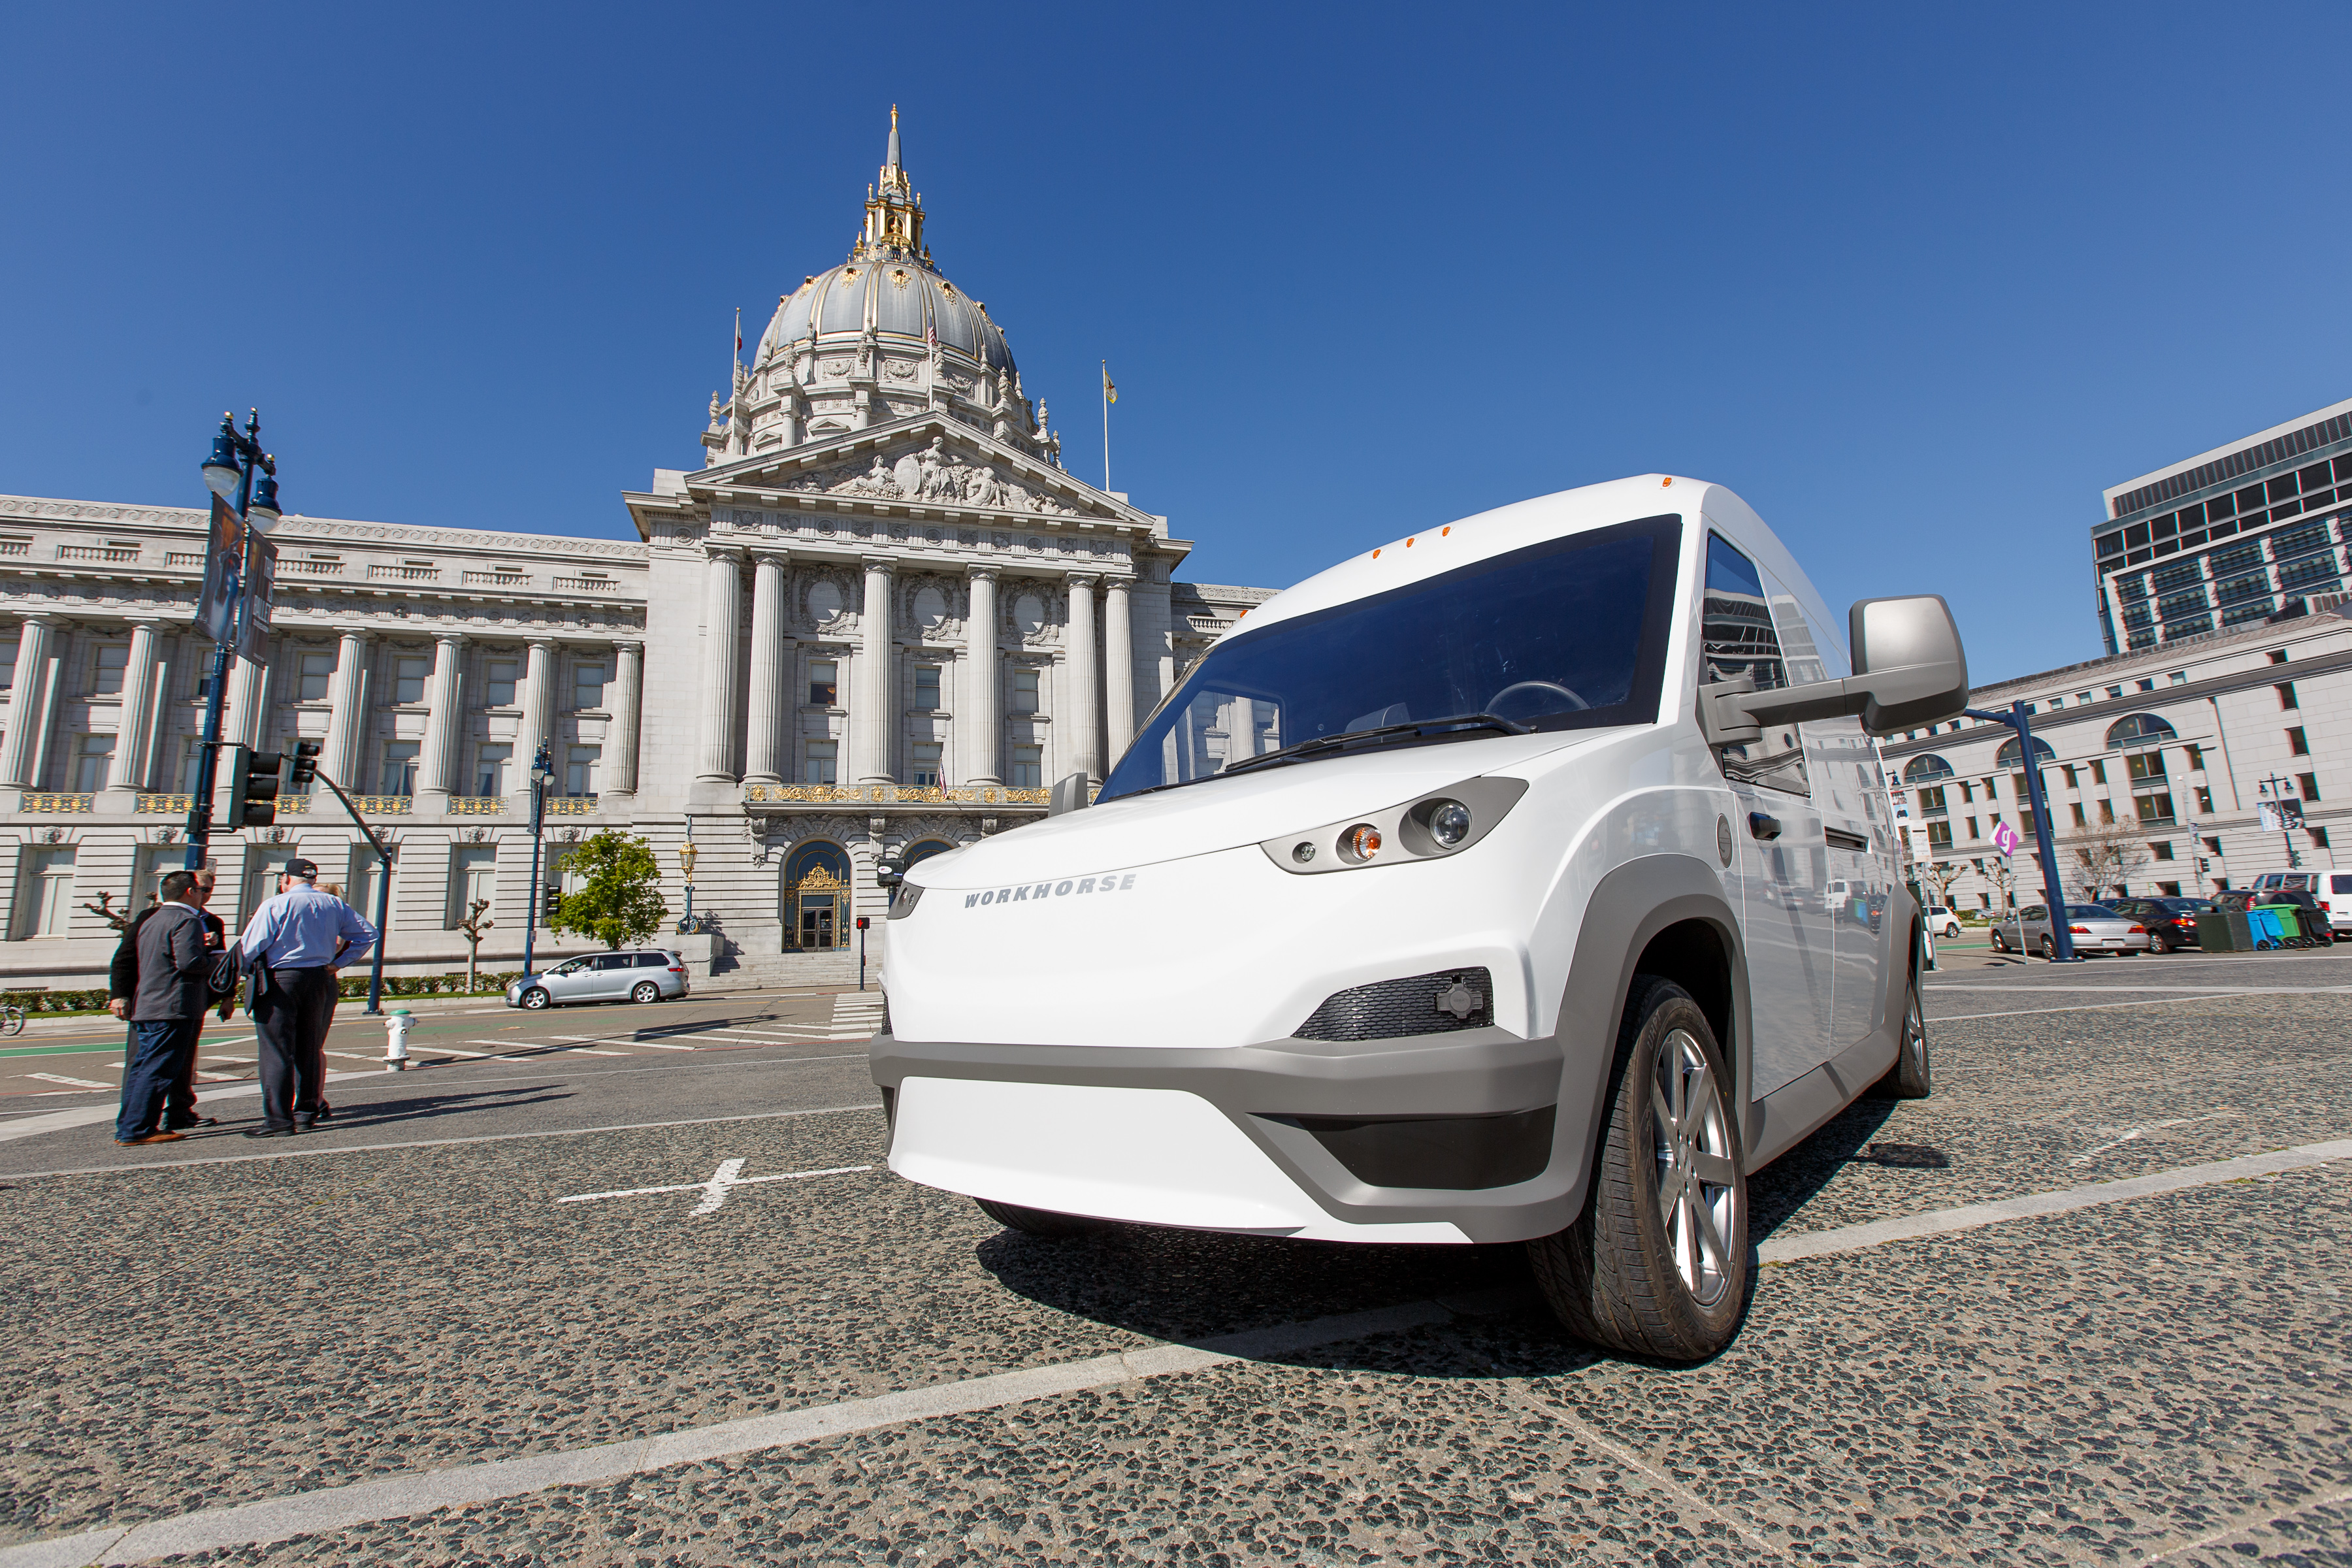 Workhorse puts its first all-electric van on the road, aims for